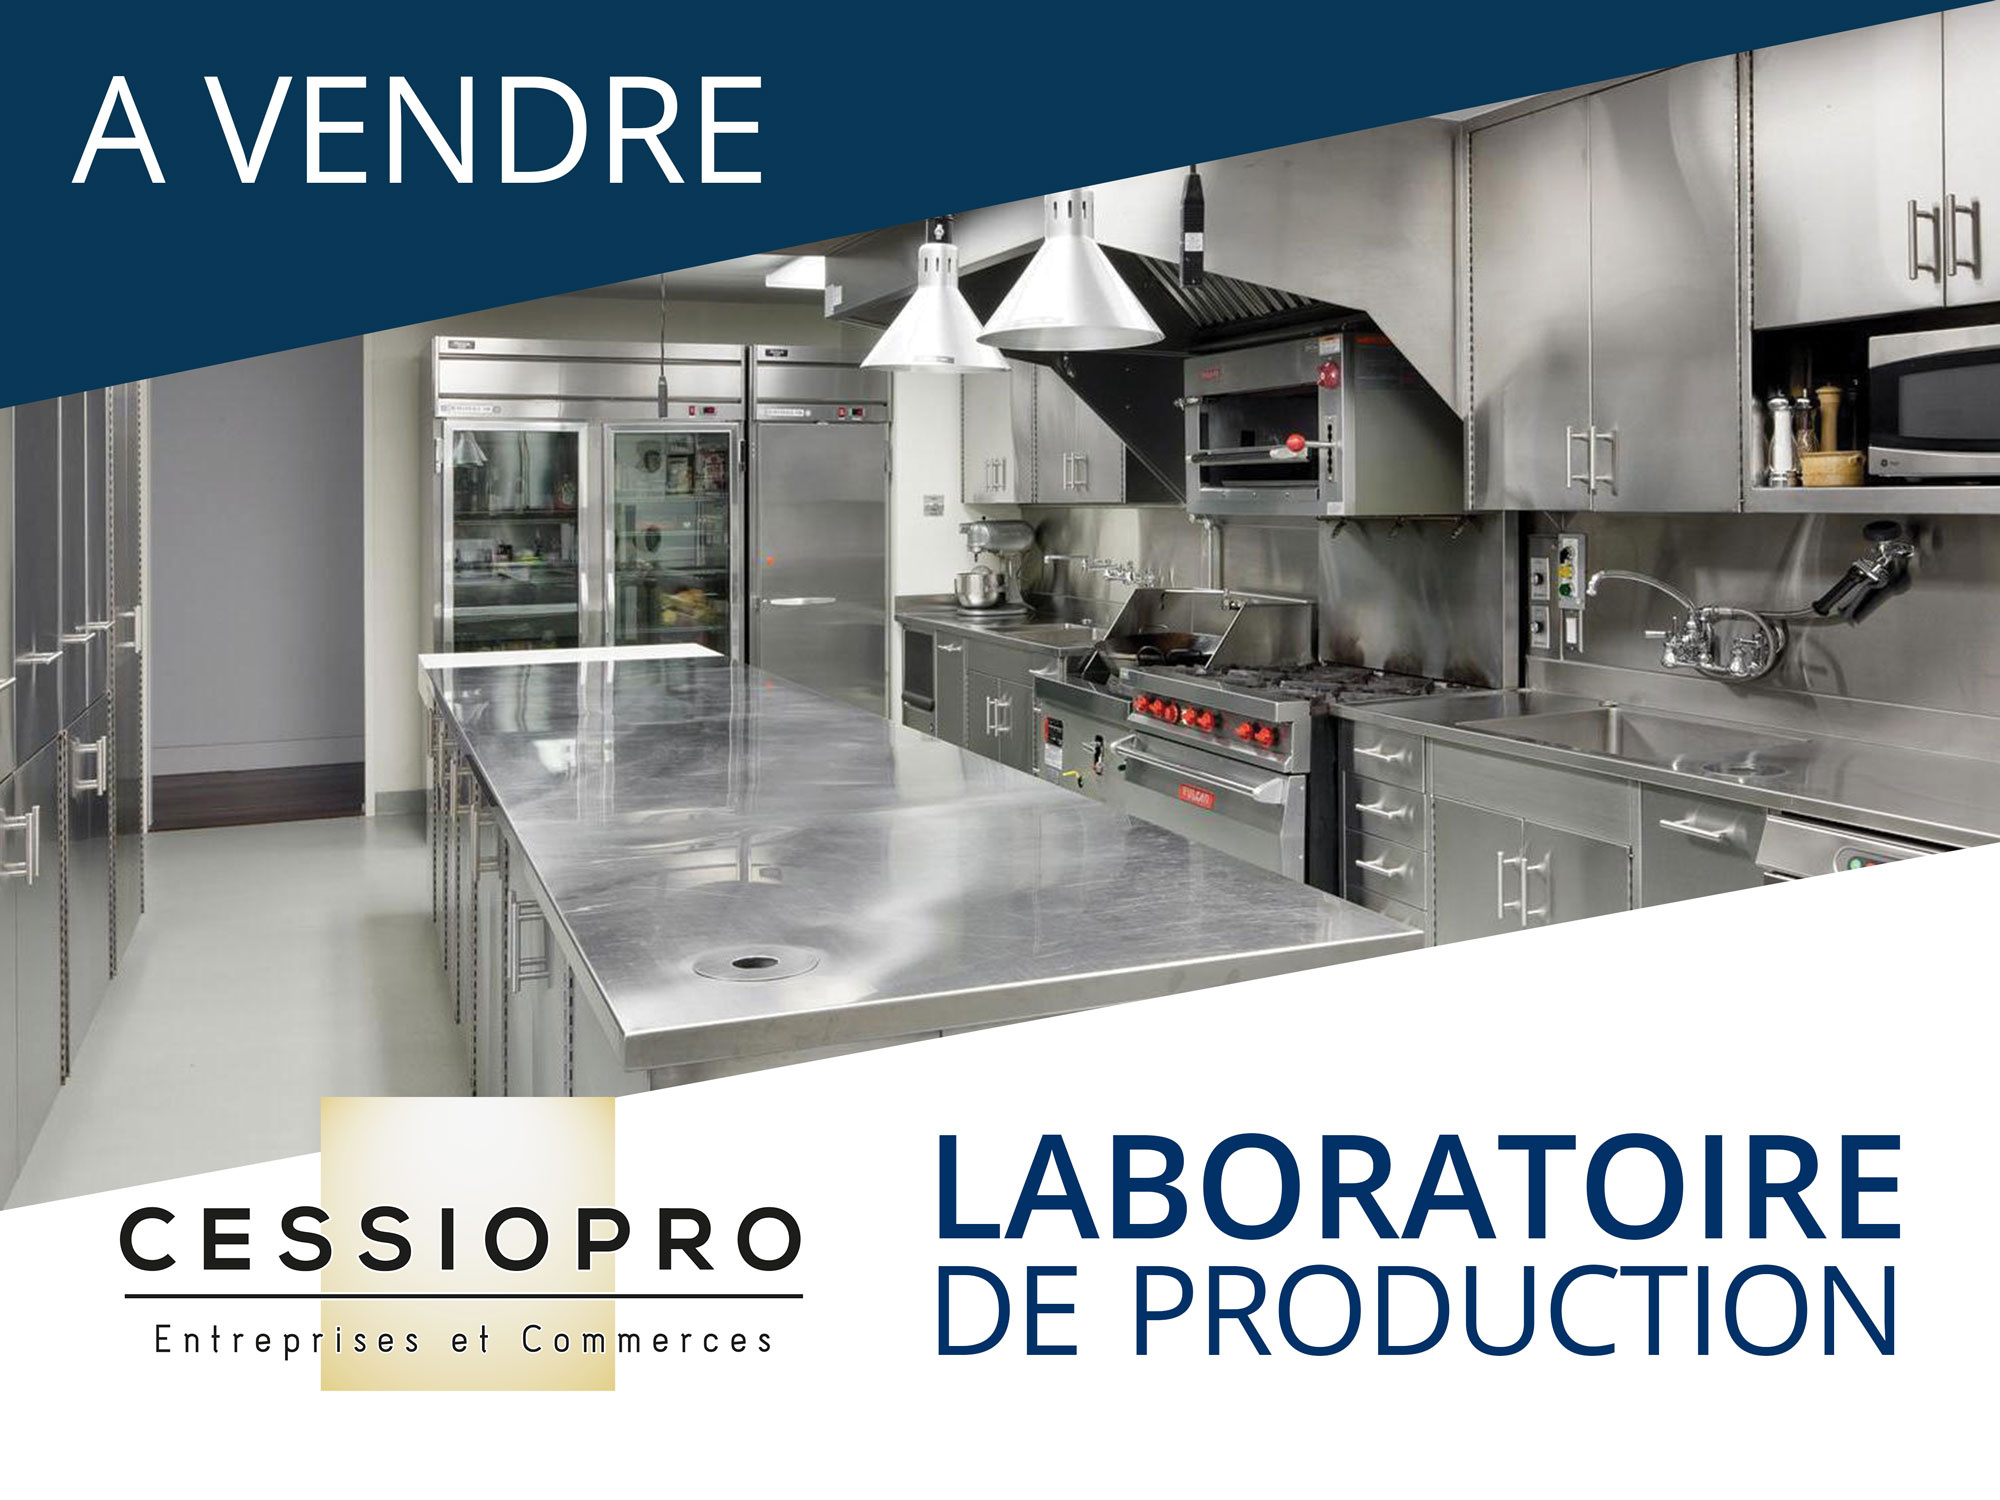 DAB LABORATOIRE DE PRODUCTION ALIMENTAIRE - ST LAURENT DU VAR ZONE INDUSTRIELLE - Boucherie Charcuterie Traiteur